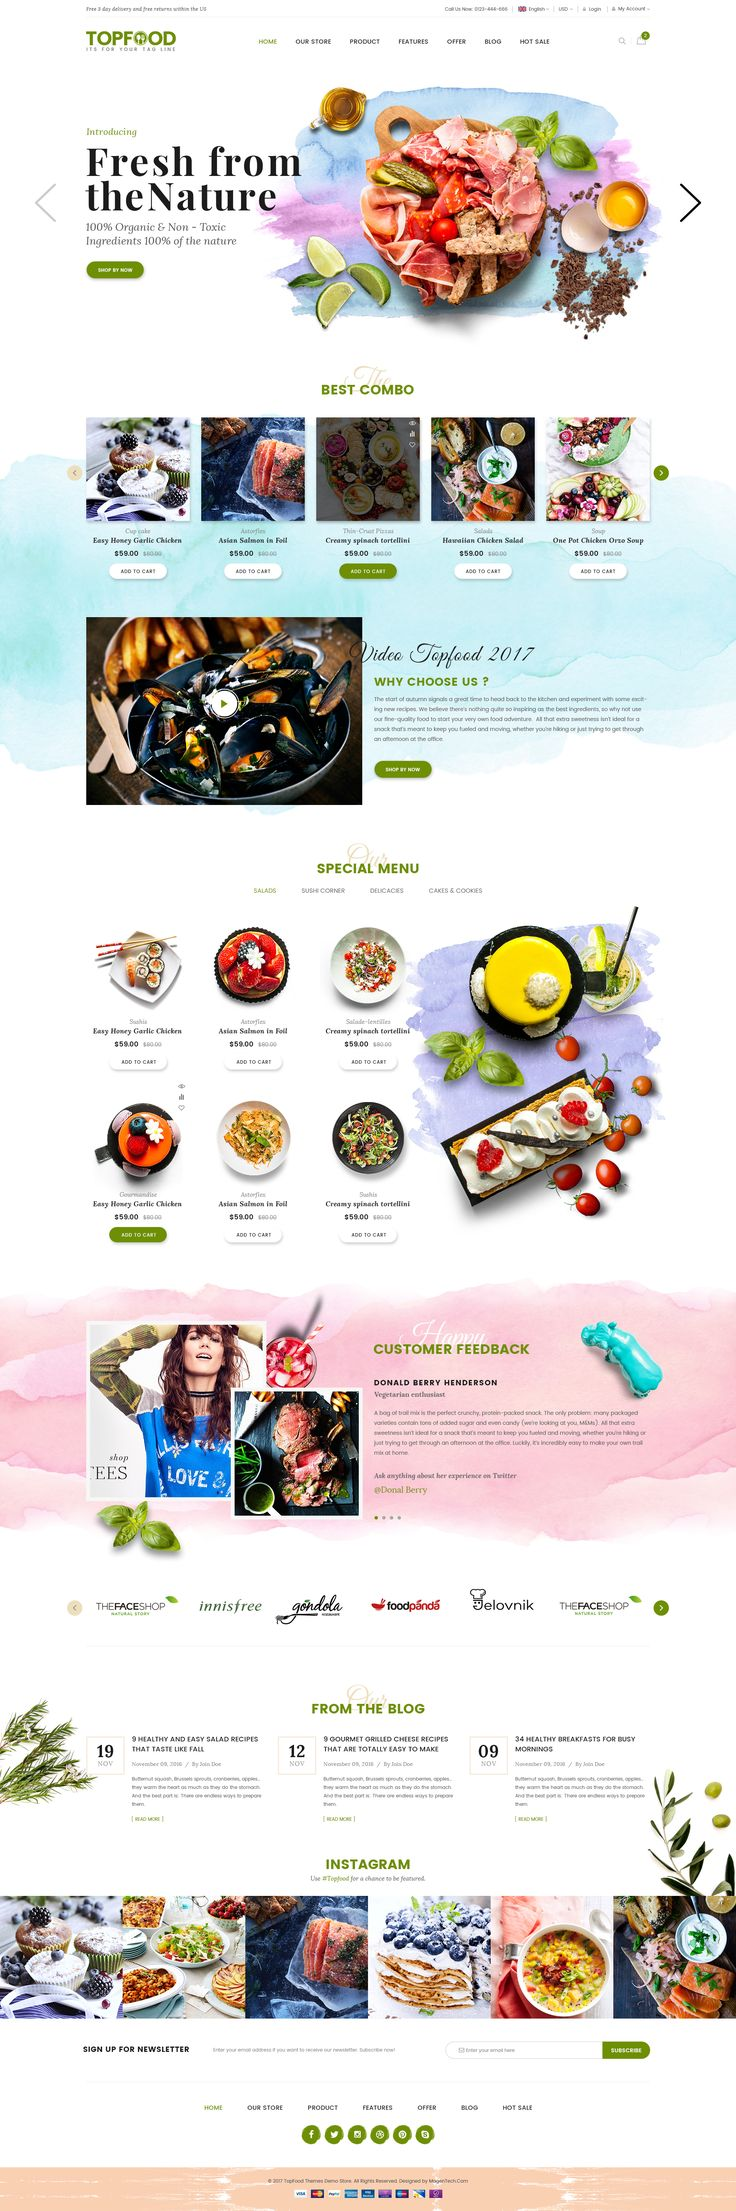 TopZ – high-end fashion and retail WooCommerce WooCommerce WordPress #webdesign #uidesign #wordpress #ecommerce